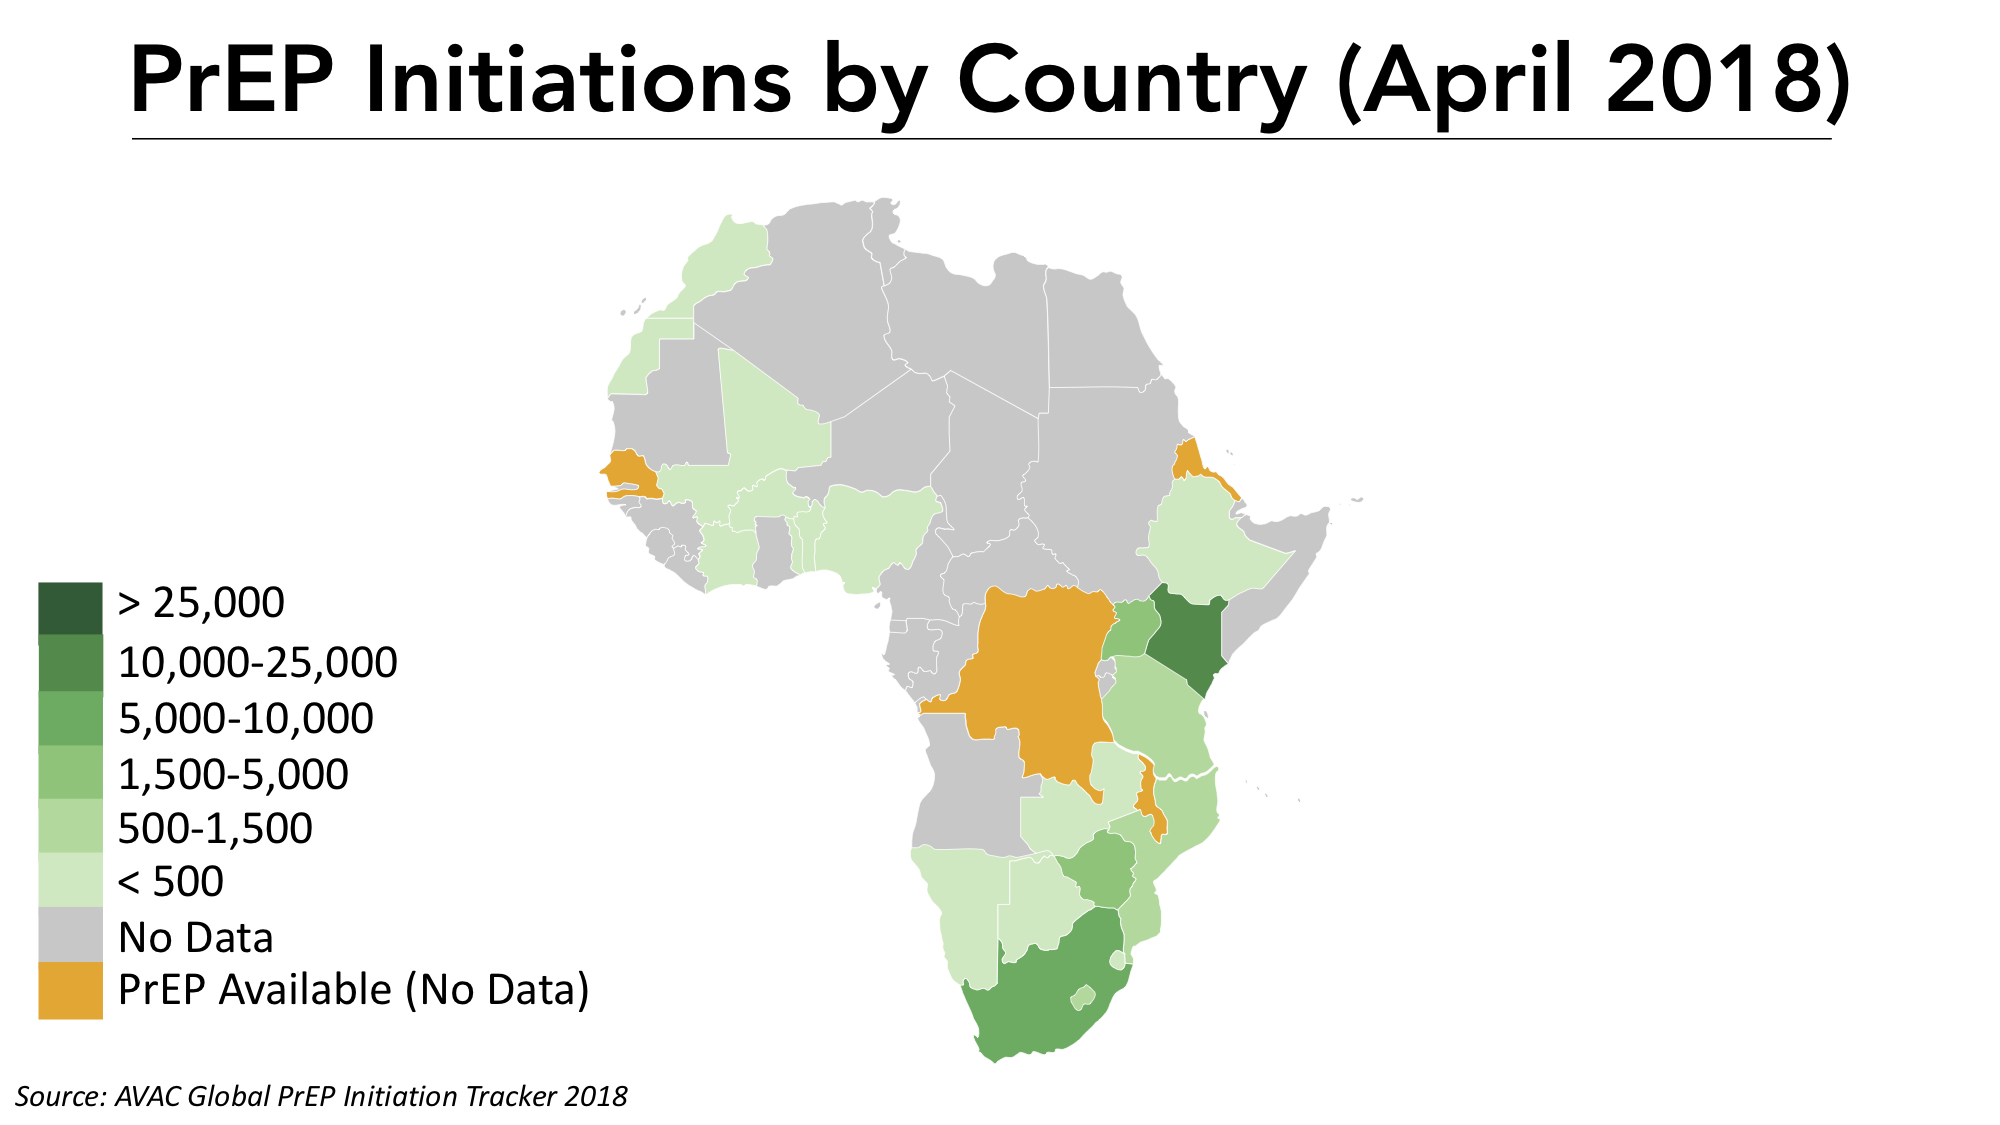 PrEP Initiations by Country in Africa | AVAC